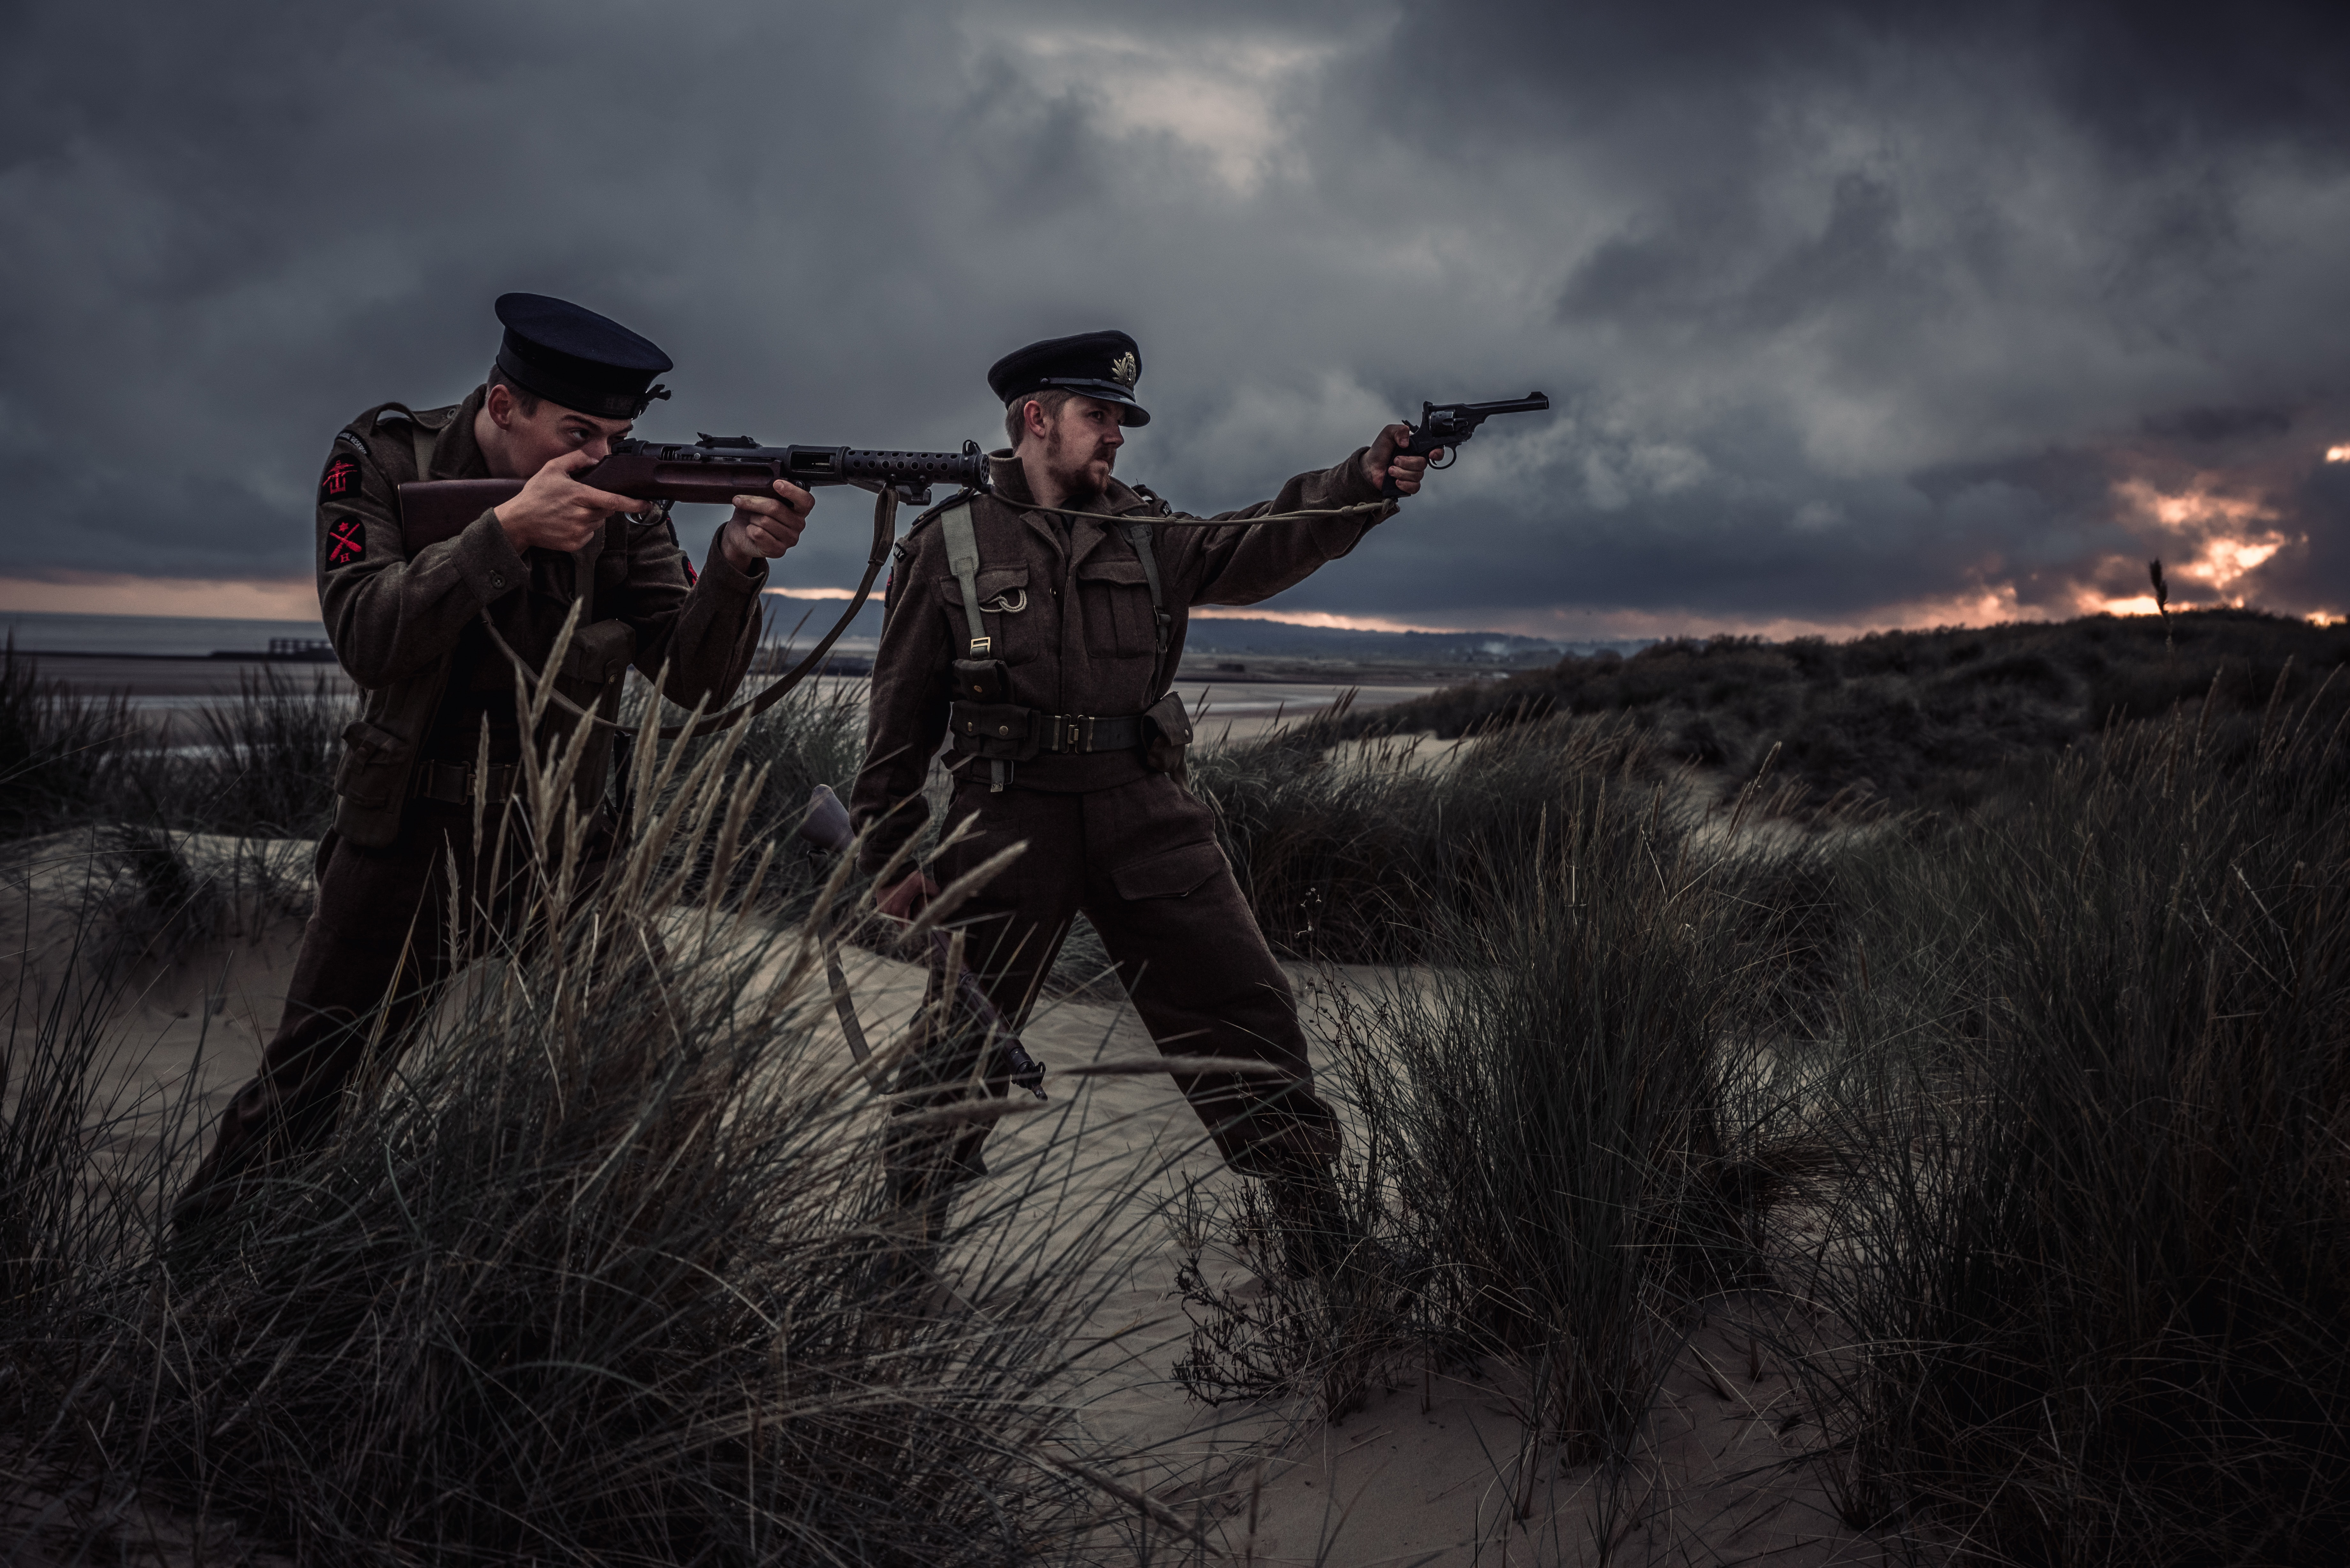 Two man holding rifle and pistol illustration photo